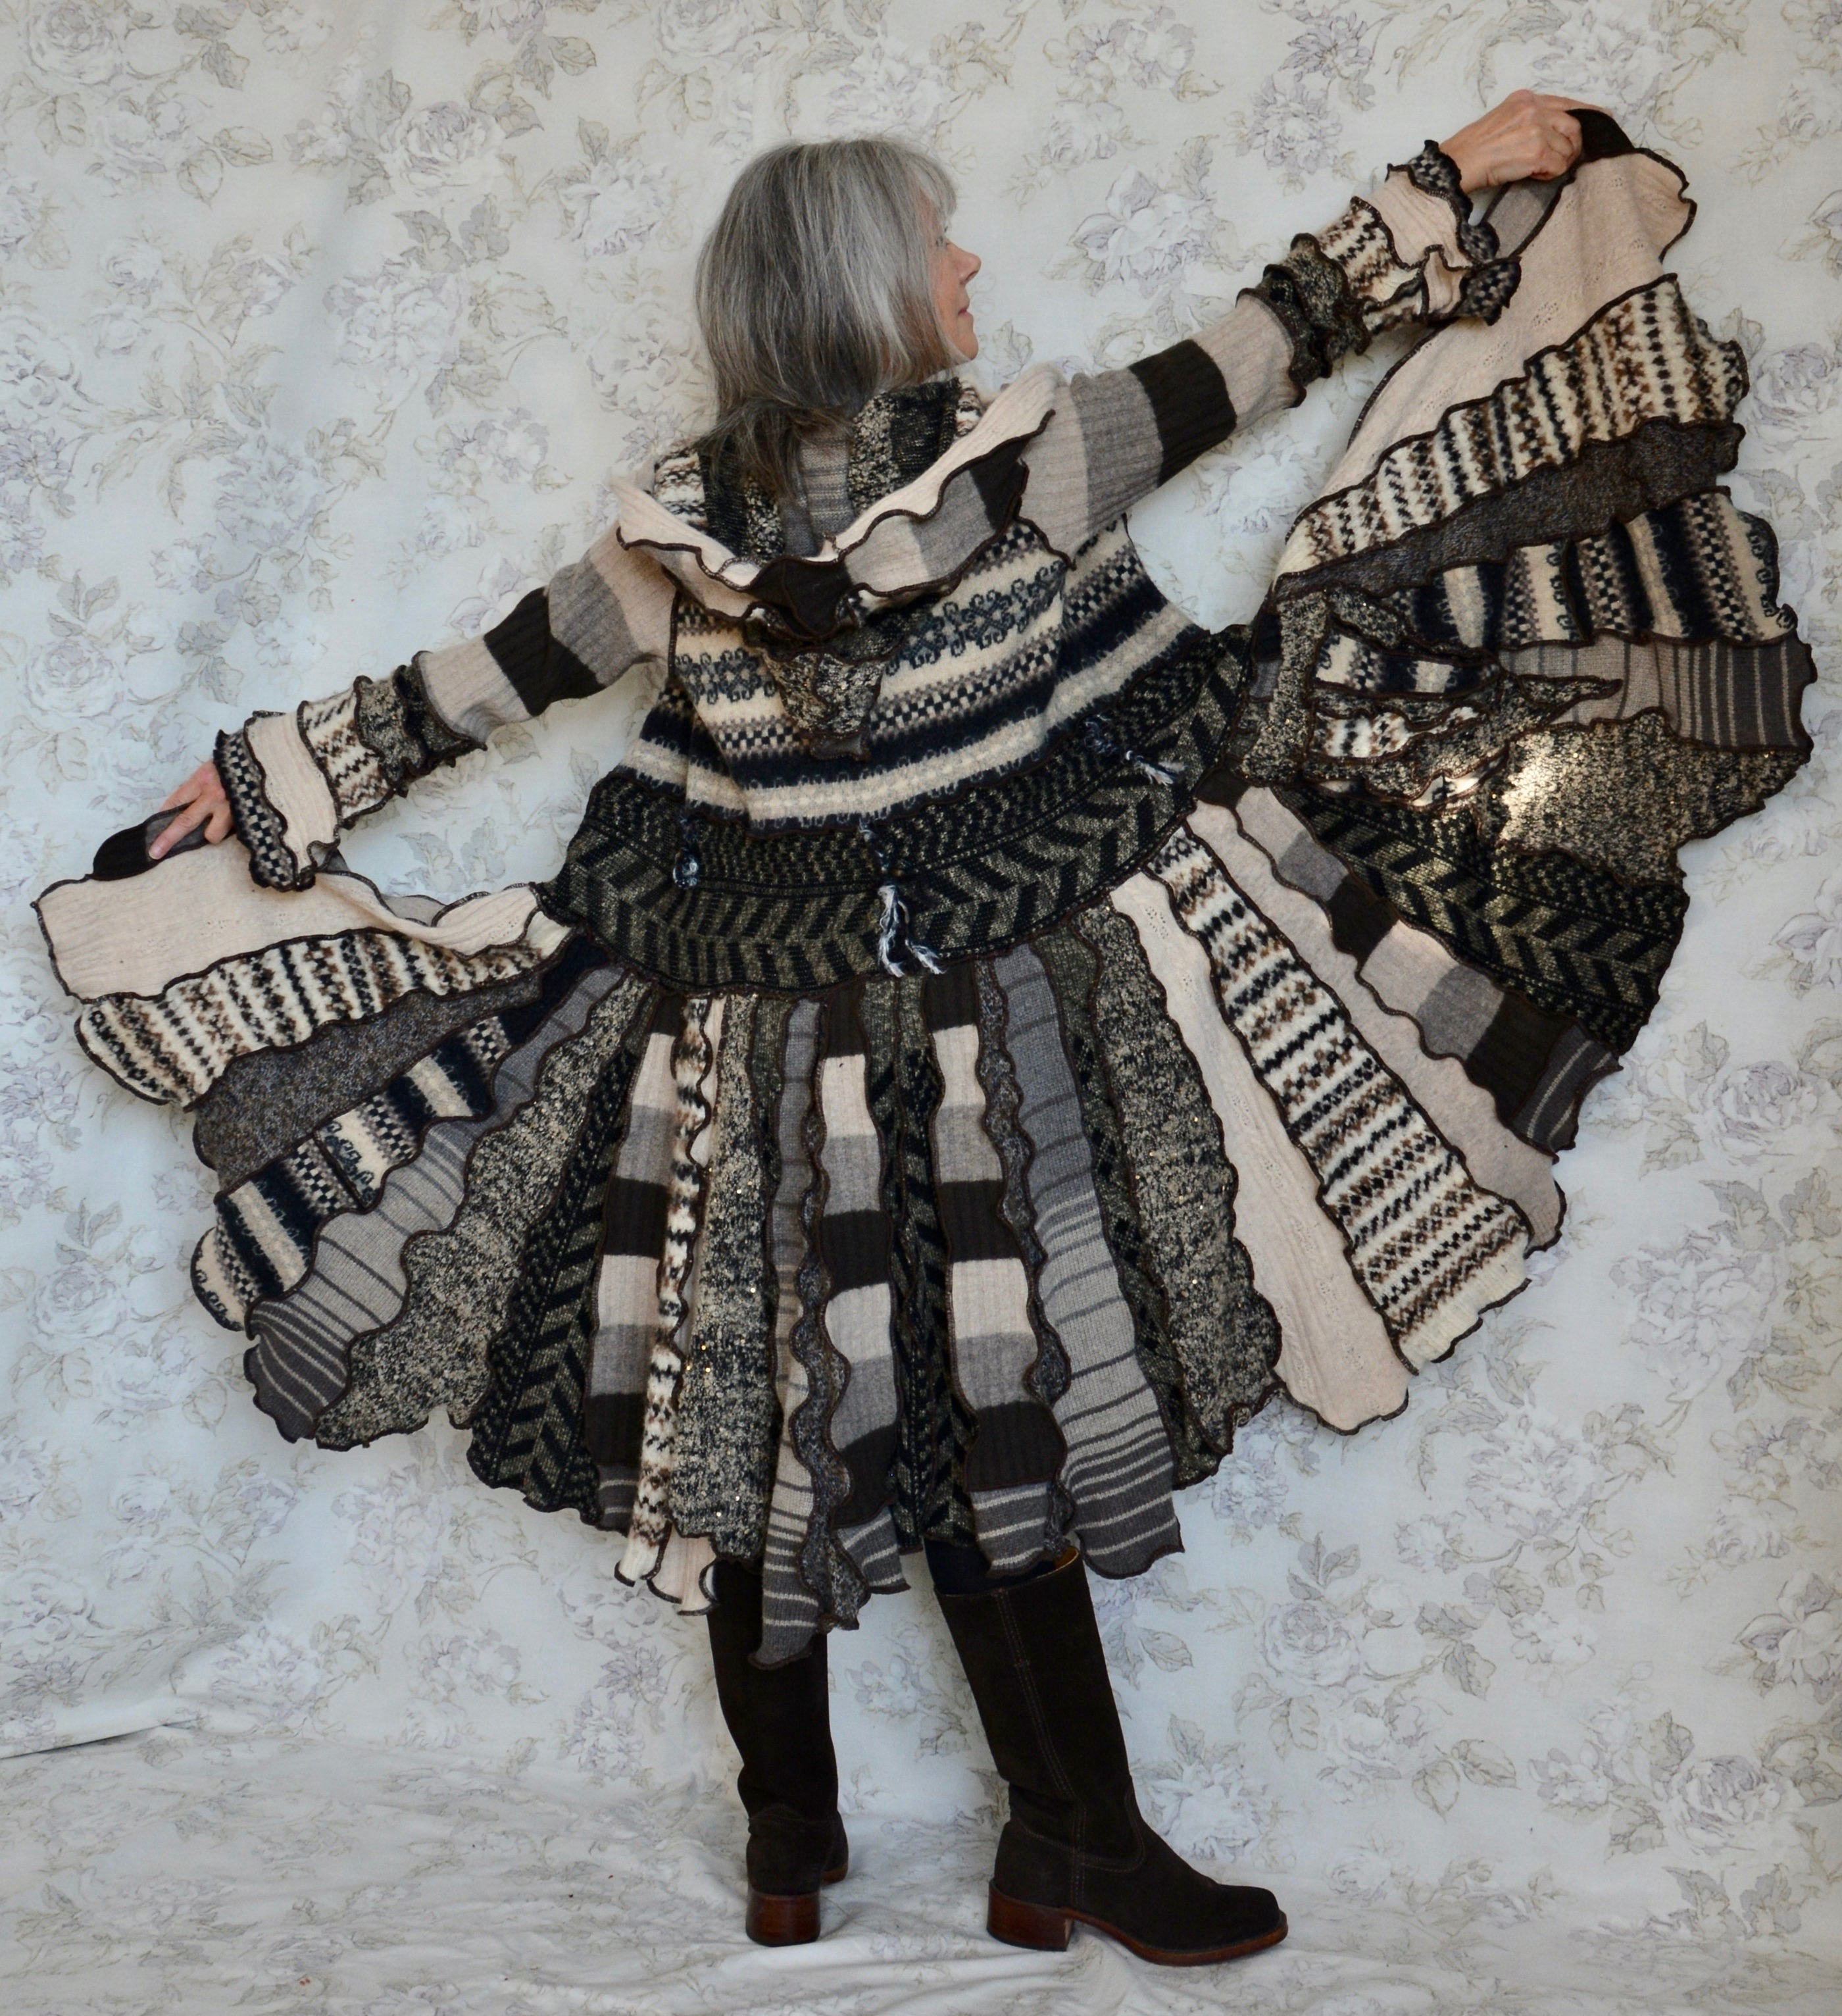 Sweater coat made from upcycled sweaters by Waterloo wearable artist Nildan Atsiz, 2019